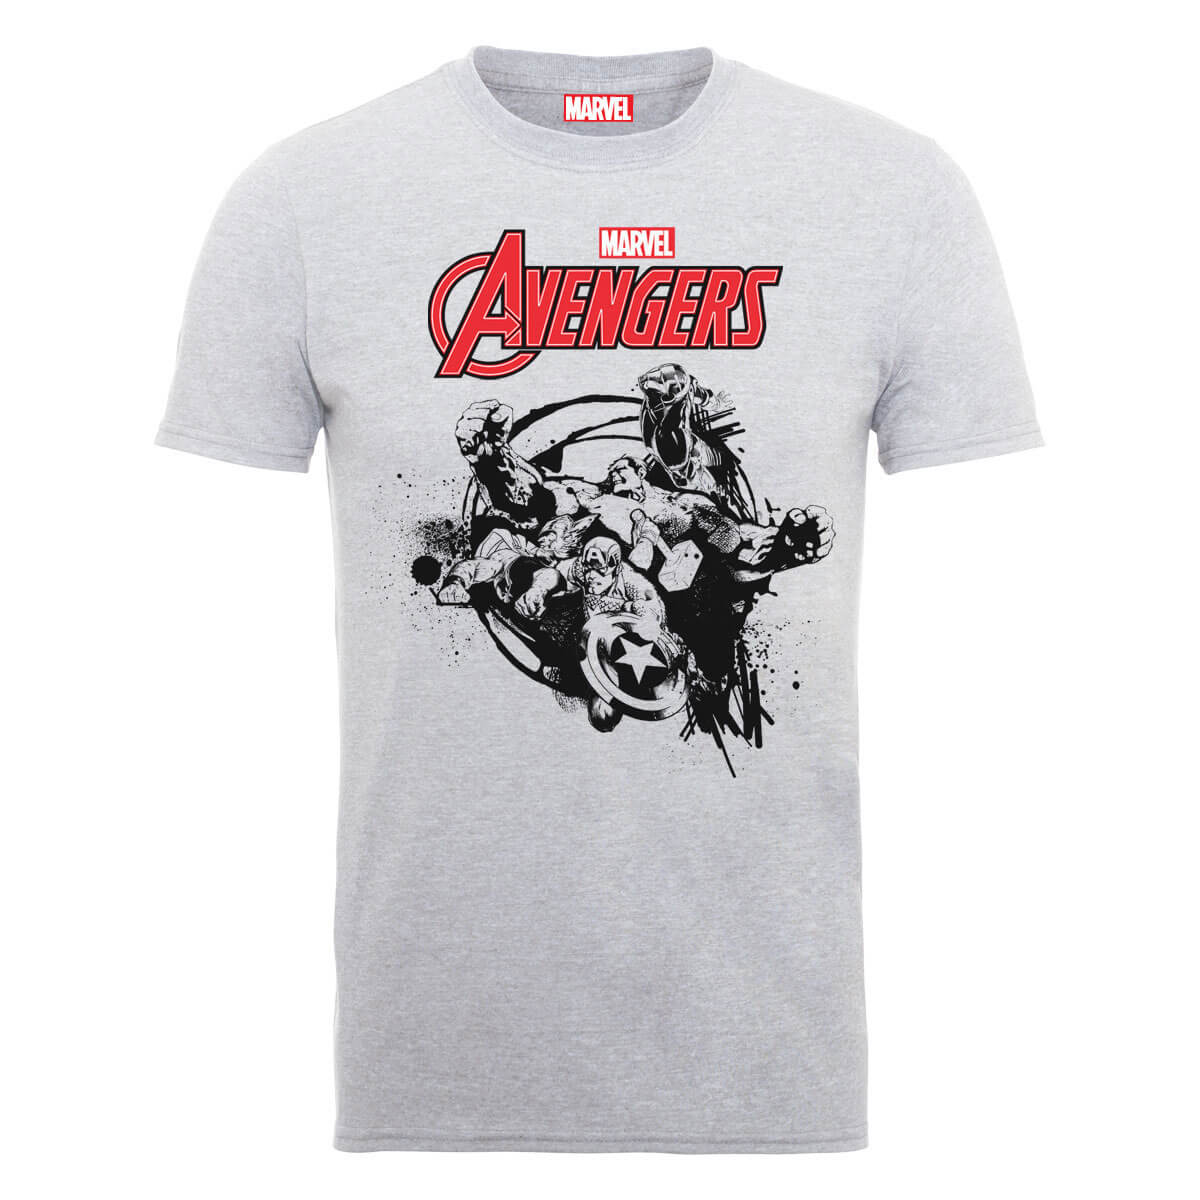 Marvel Avengers Team Burst T-Shirt - Grey